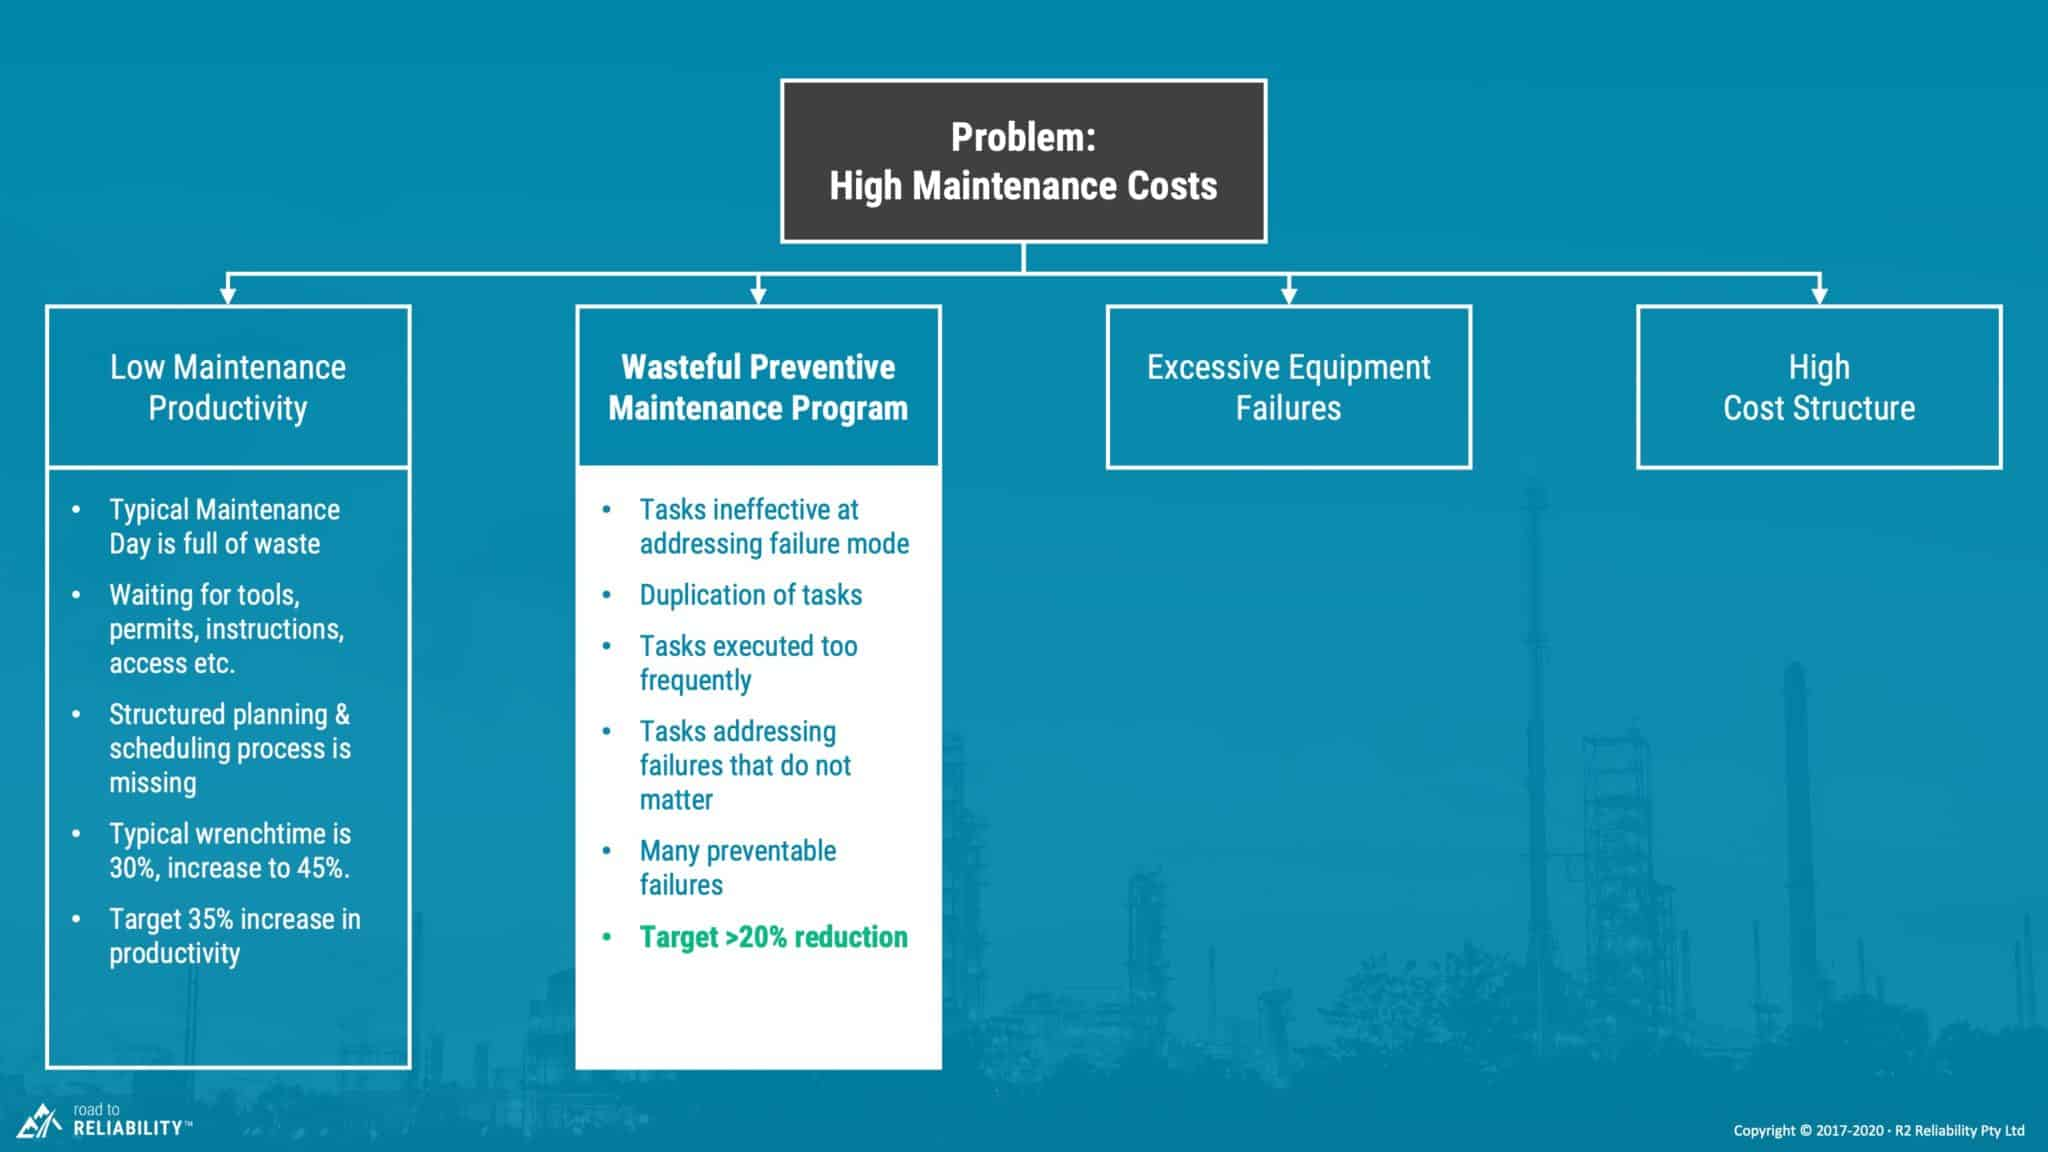 high maintenance costs due to poor quality Preventive Maintenance program